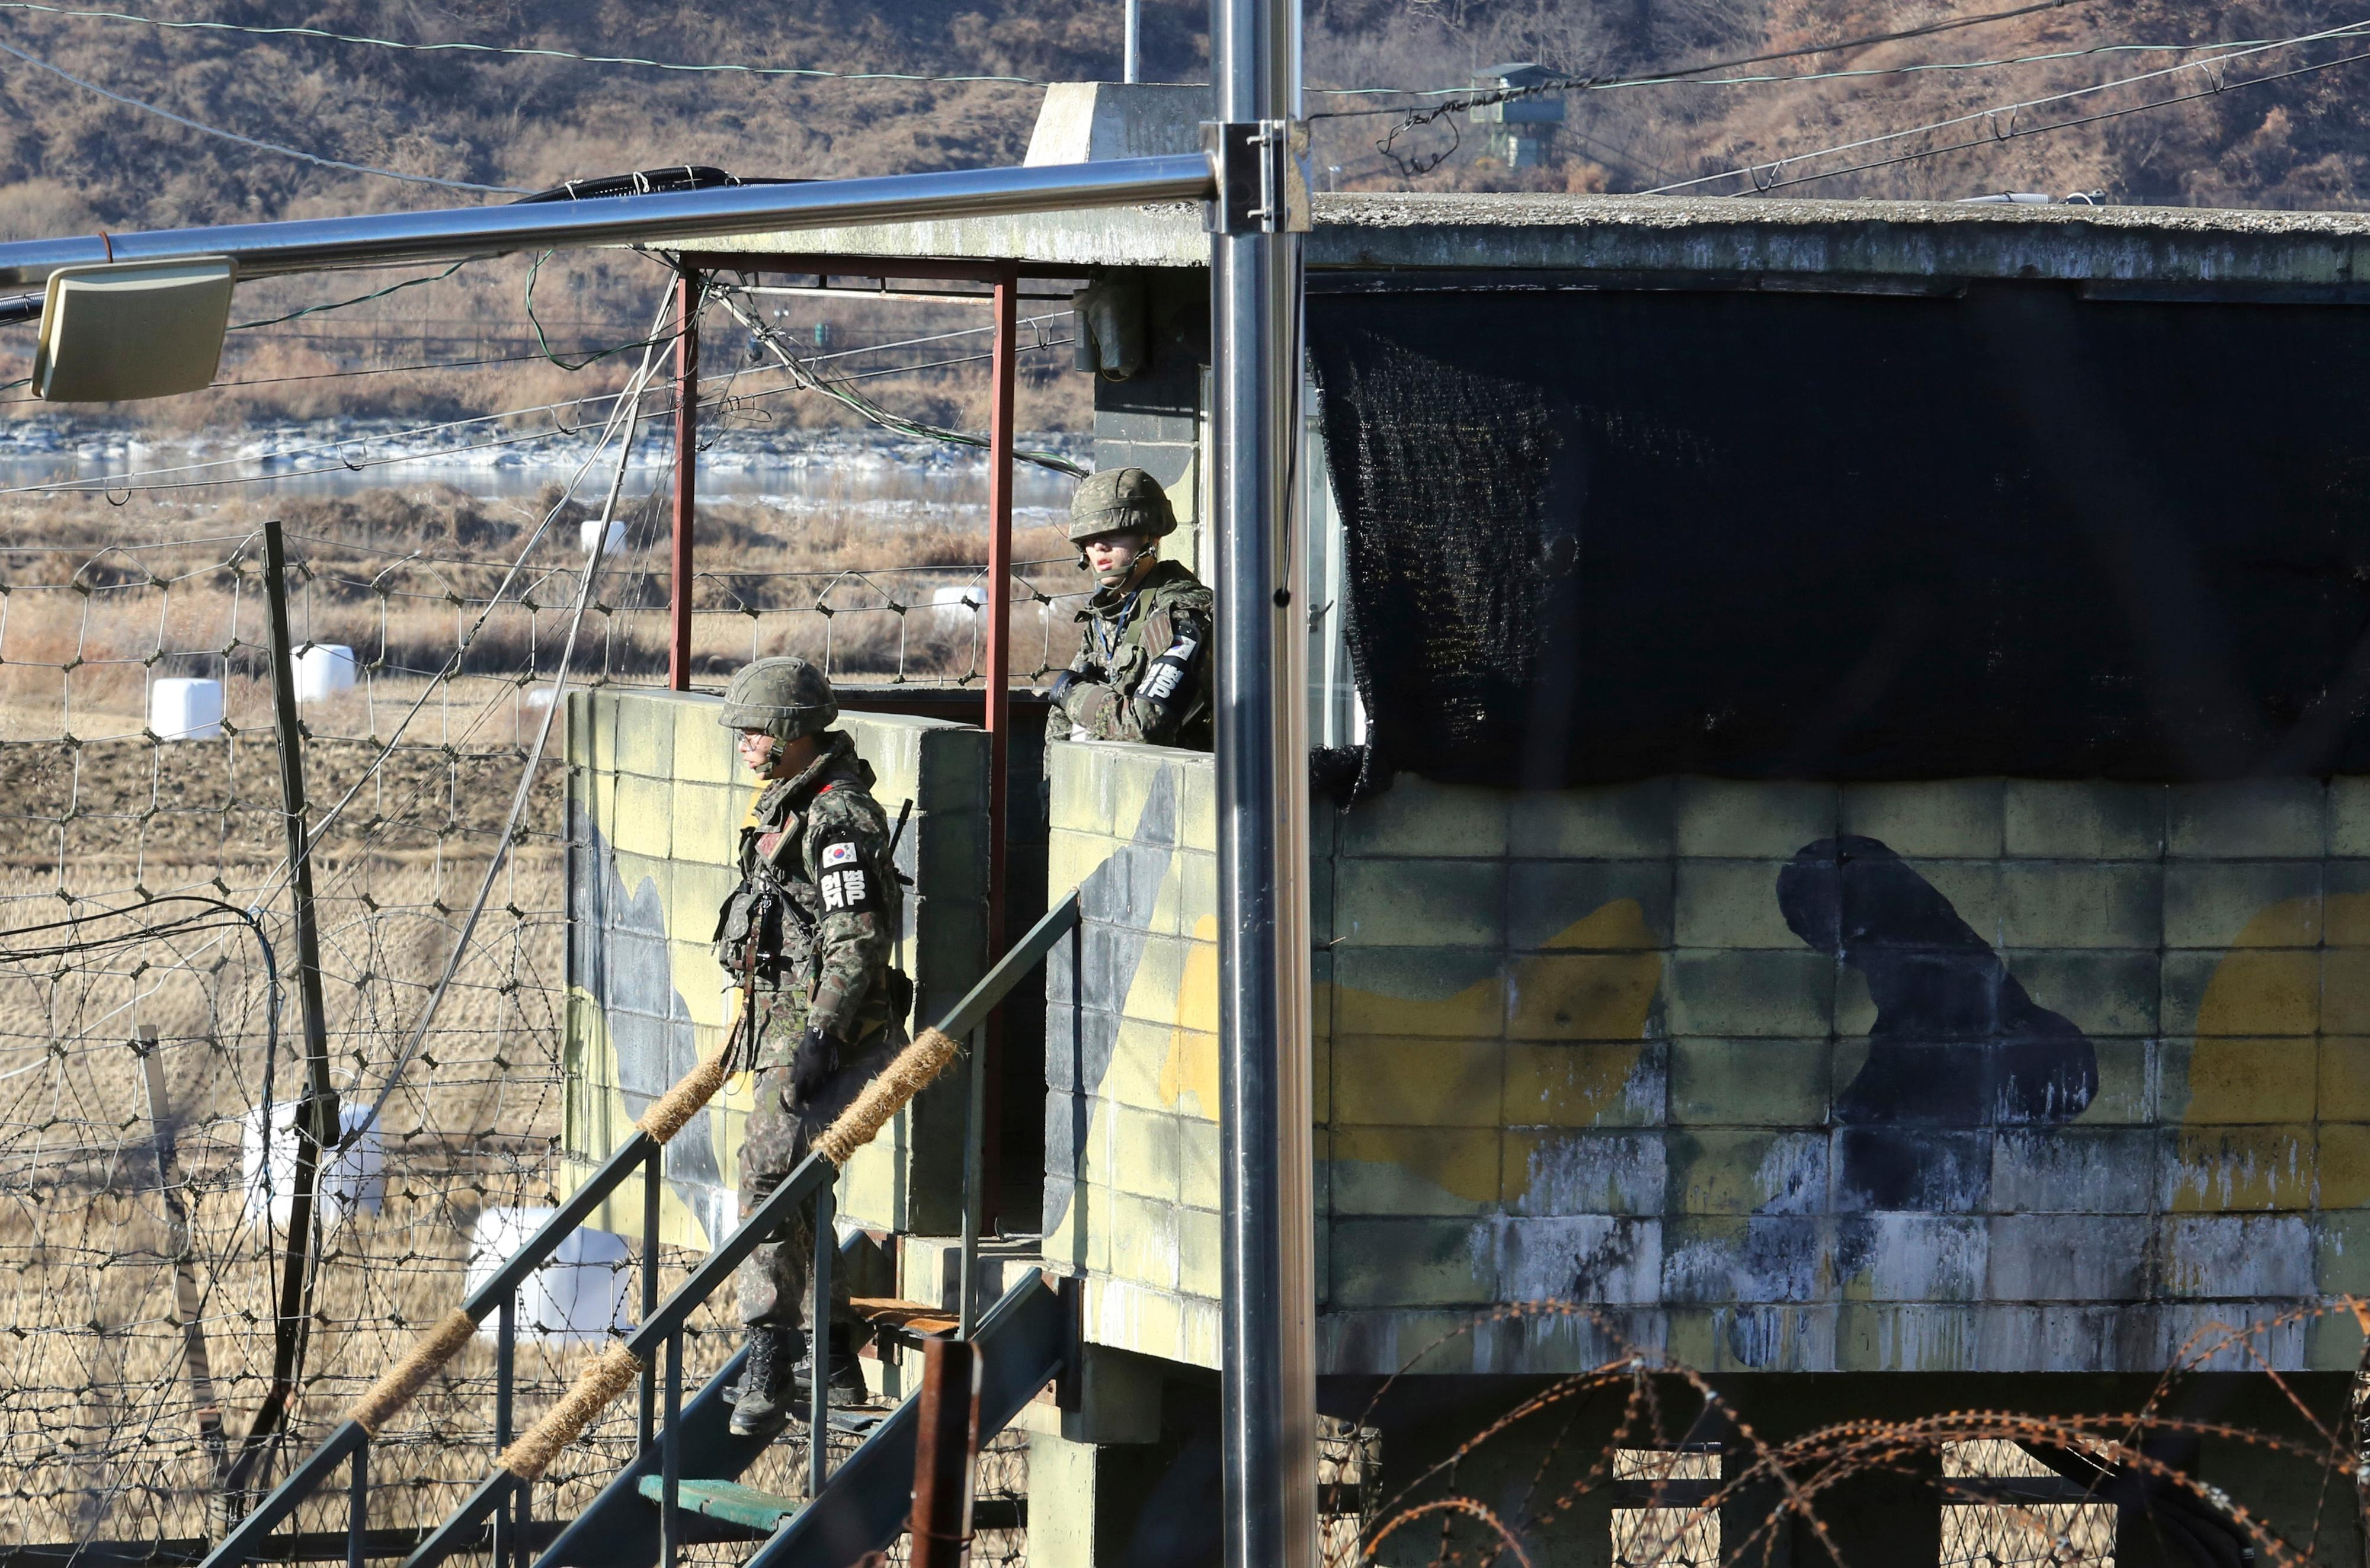 "South Korean army soldiers step down from a military guard post in Paju, South Korea, near the border with North Korea Monday, Dec. 25, 2017. North Korea on Sunday called the latest U.N. sanctions to target the country ""an act of war"" that violates its sovereignty, and said it is a ""pipe dream"" for the United States to think it will give up its nuclear weapons. (AP Photo/Ahn Young-joon)"